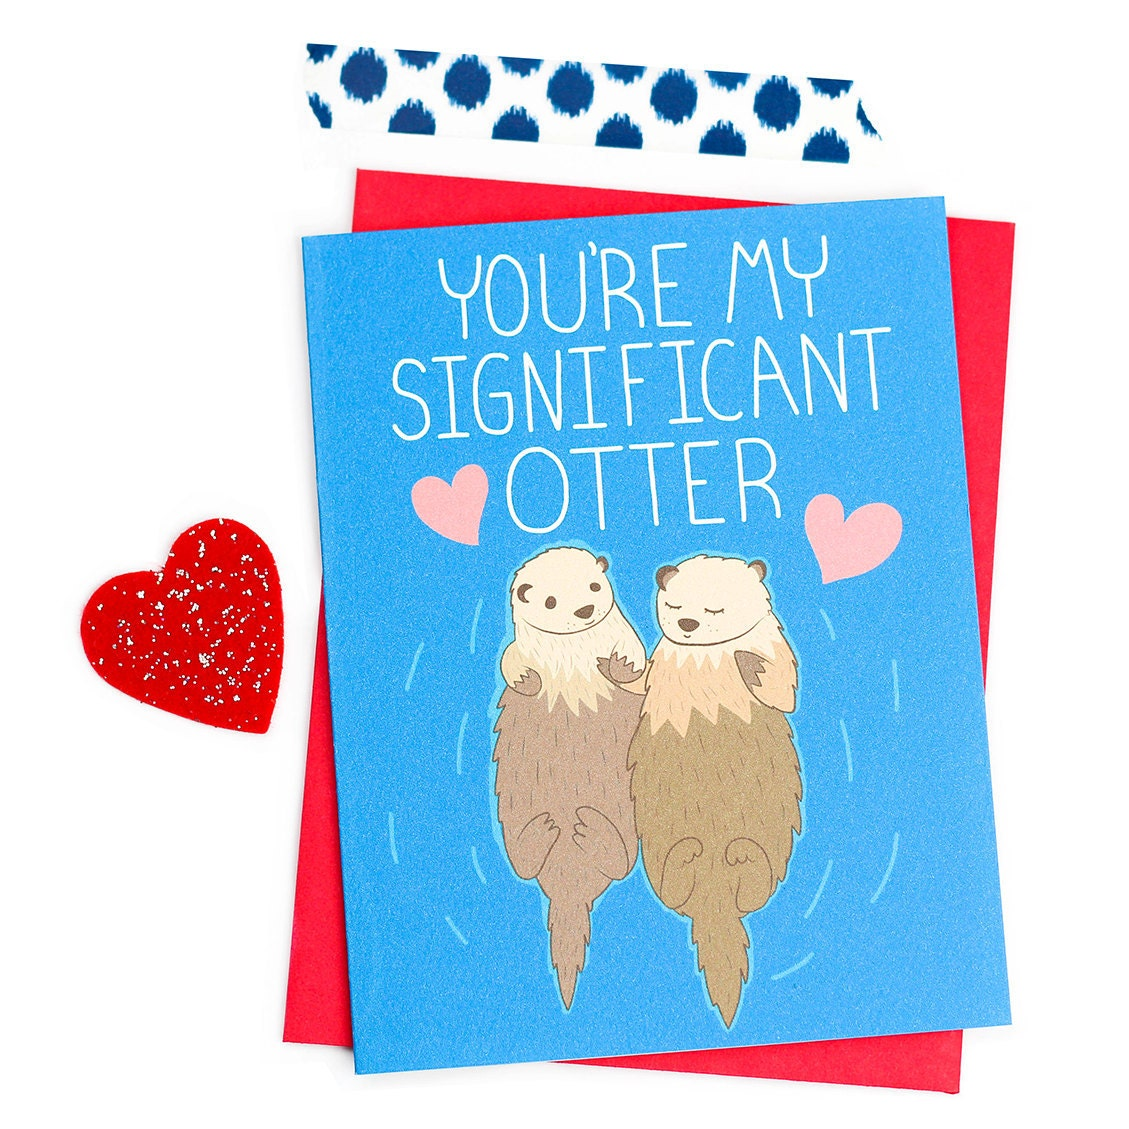 Funny anniversary card significant otter boyfriend card for zoom kristyandbryce Image collections